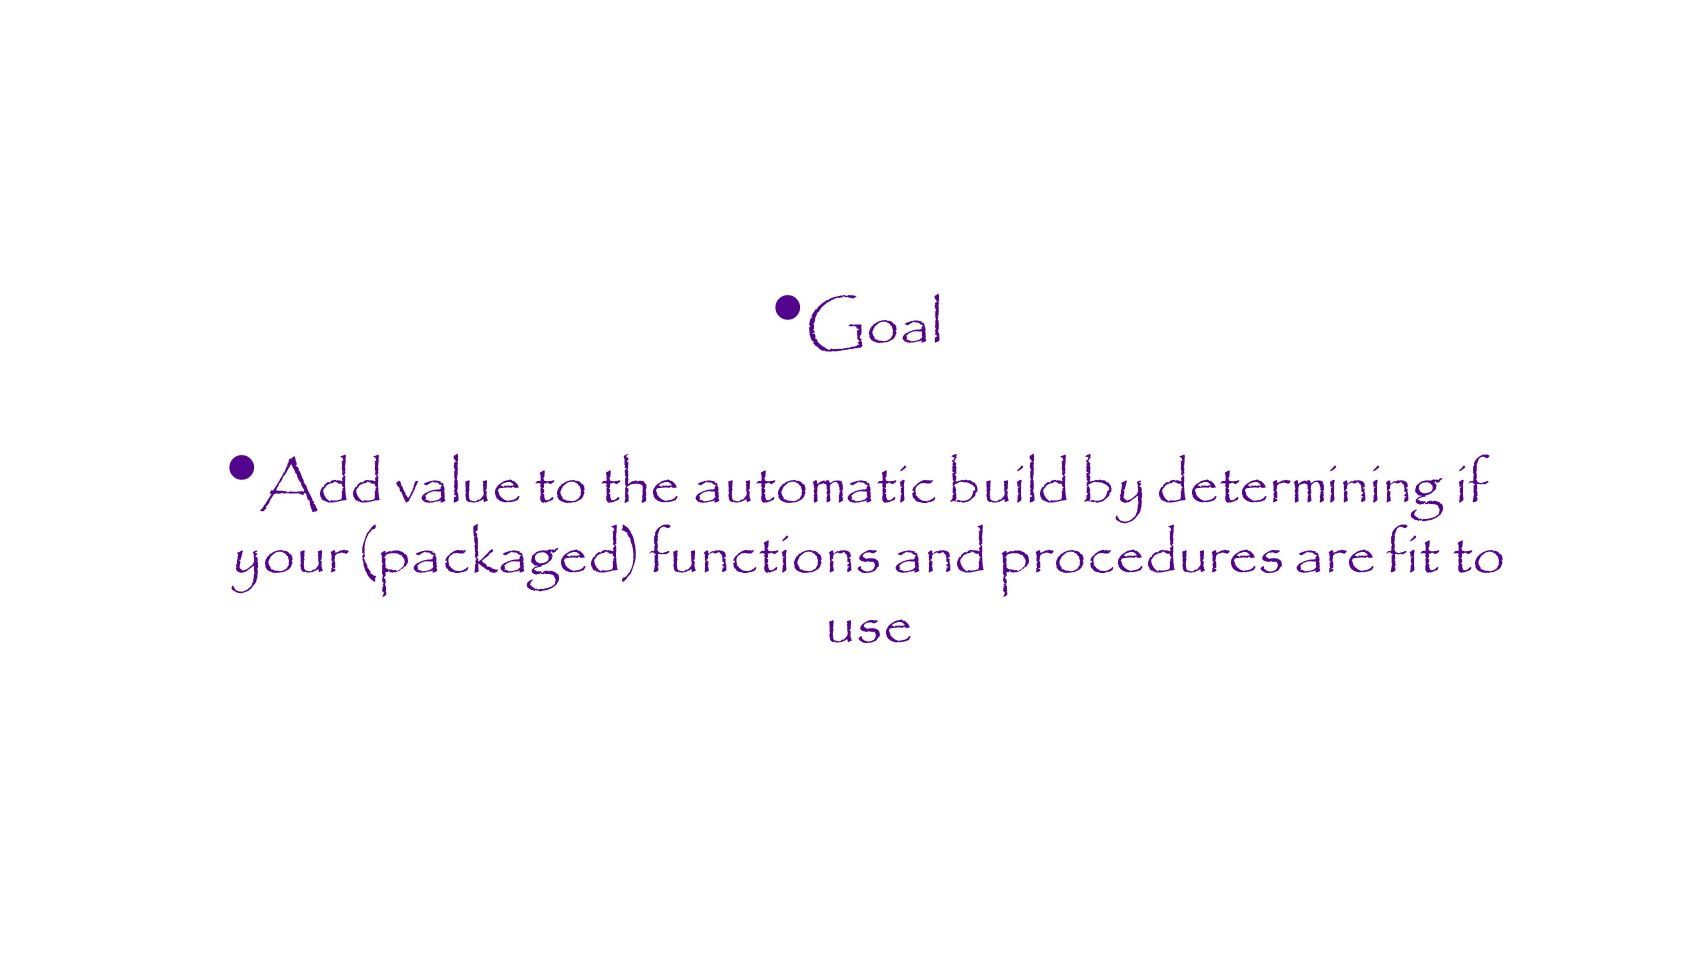 Goal Add value to the automatic build by determining if your (packaged) functions and procedures are fit to use.